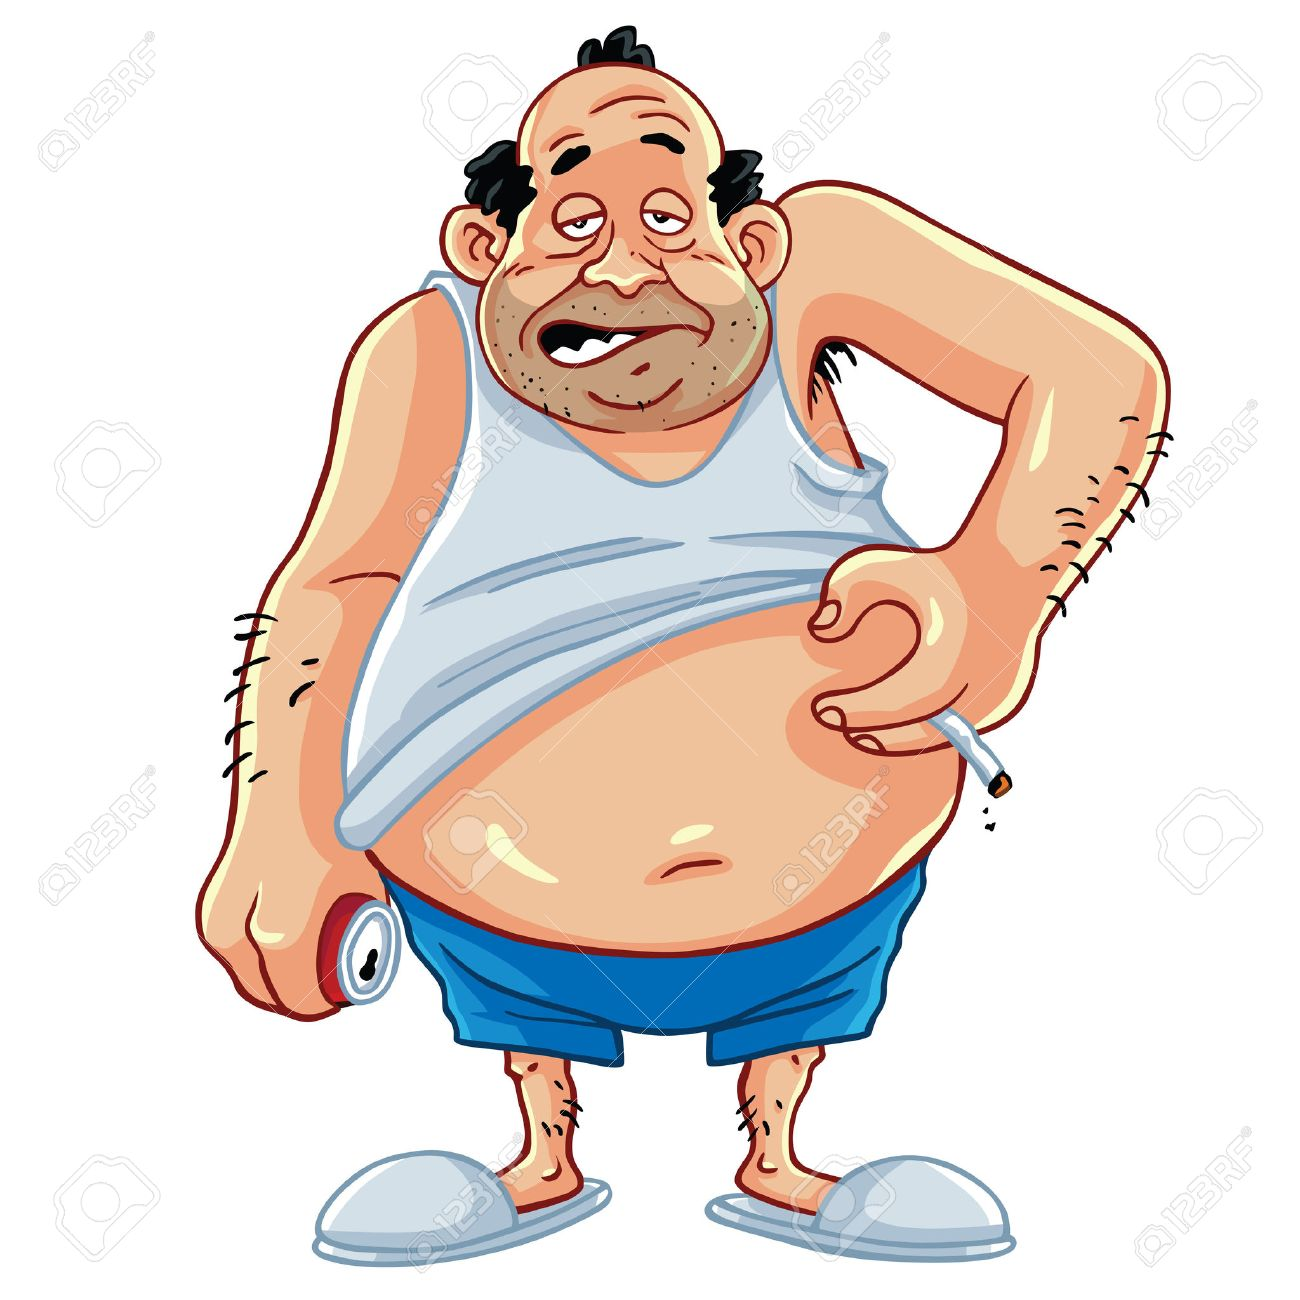 fat man smoking and drinking coke character design royalty free rh 123rf com Fat Guy Eating Cartoon Fat Guy Exercising Clip Art